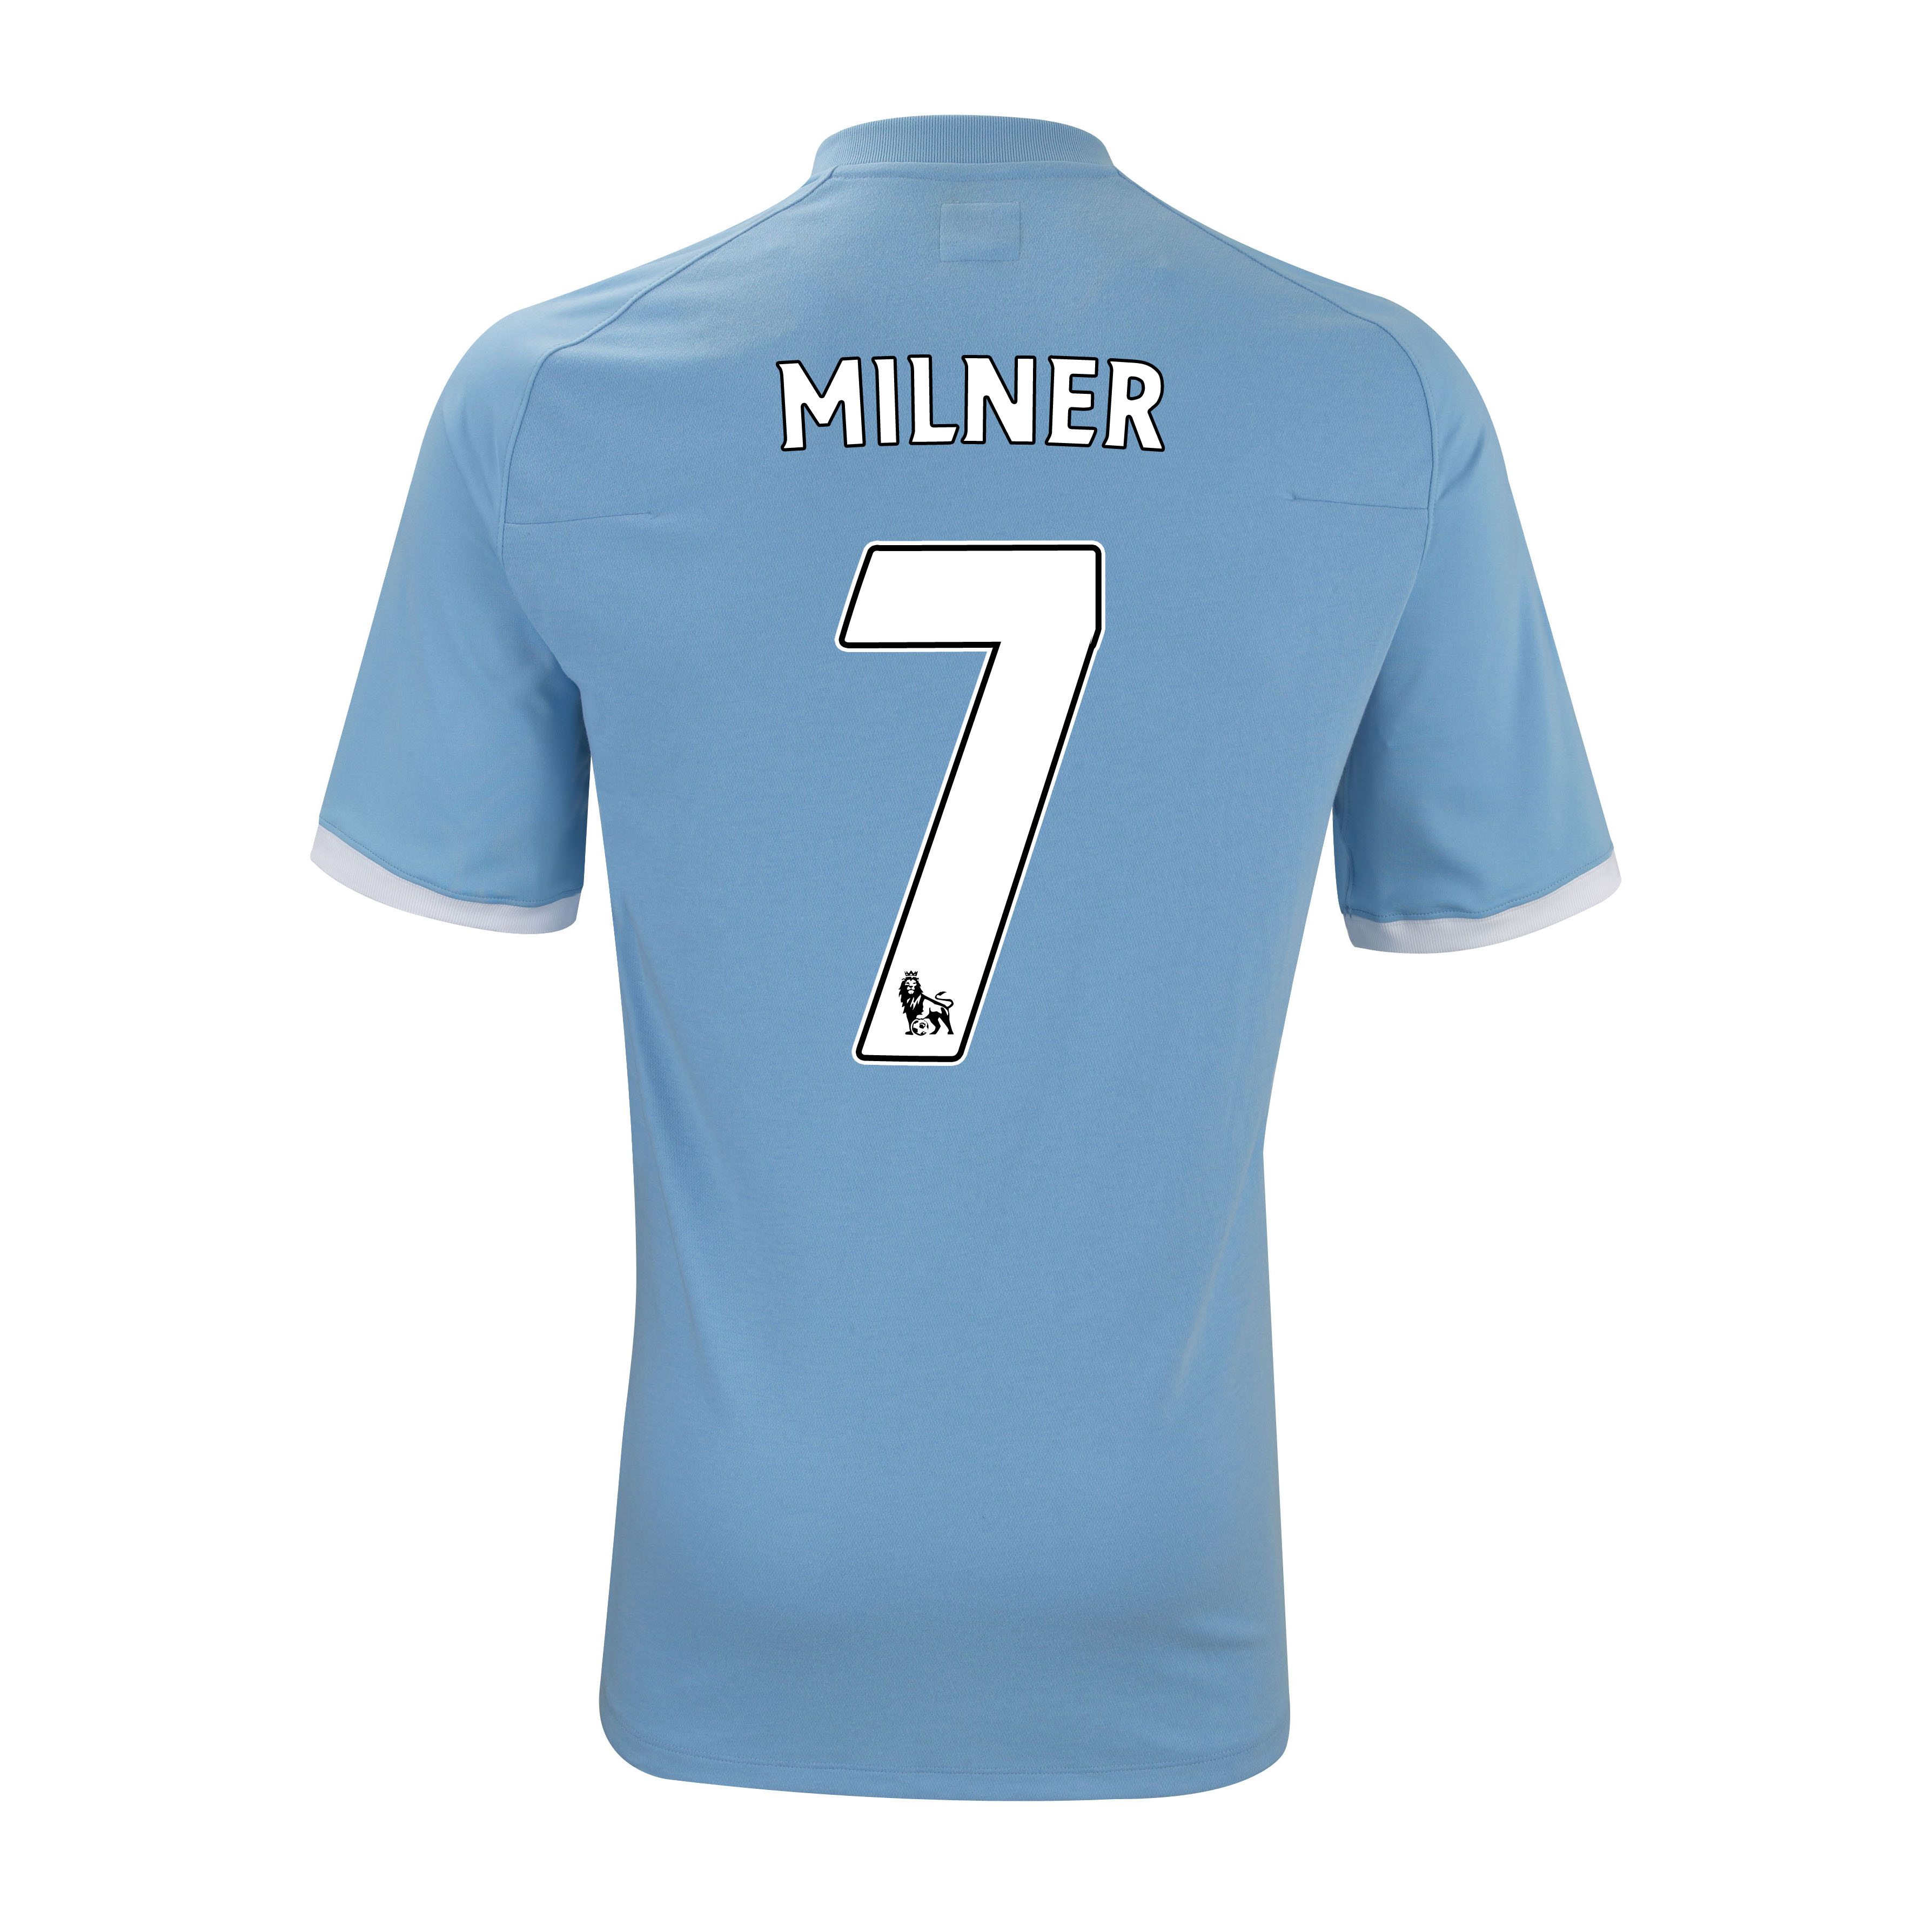 Manchester City Home Shirt 2010/11 with Milner 7 Printing - Kids